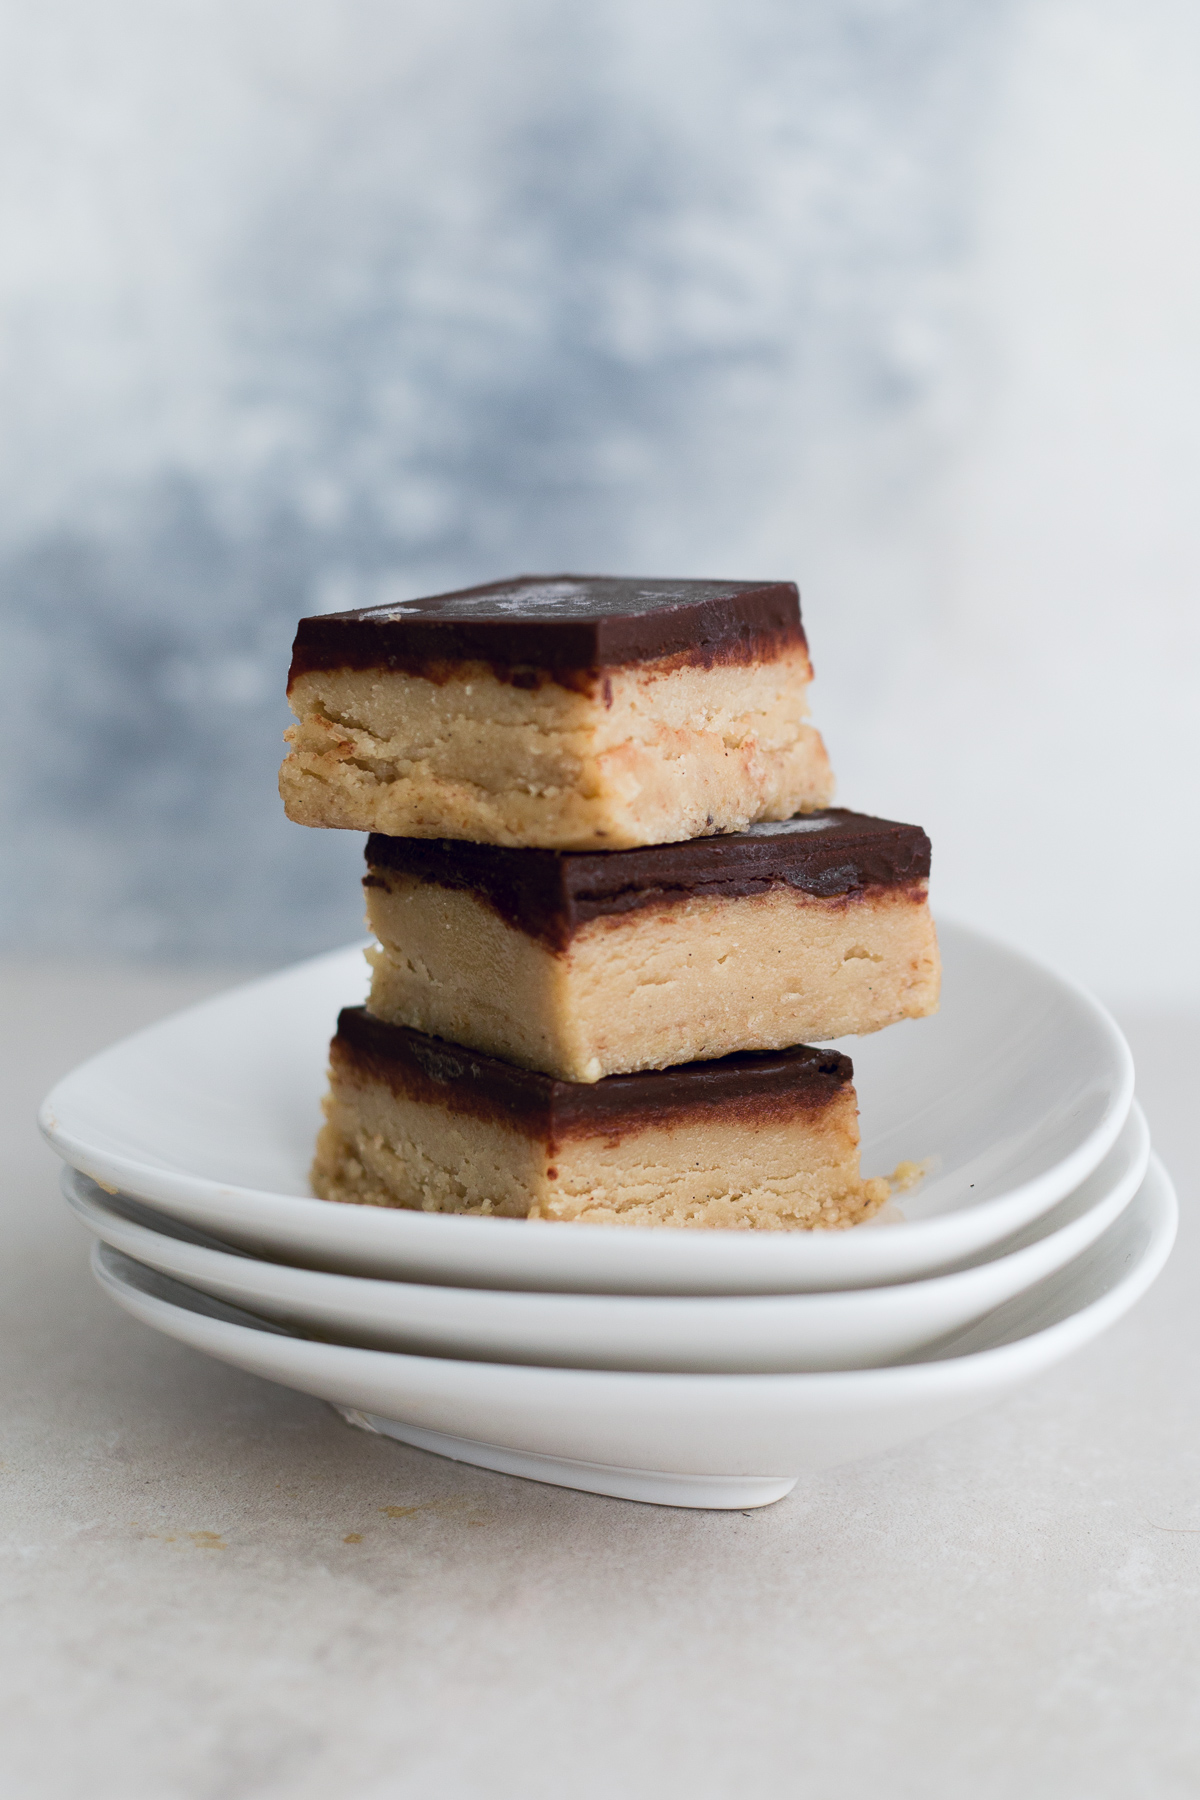 A delicious Raw Vegan Tahini Caramel Slice topped with Chocolate - easy to make, full of wholesome ingredients and completely DATE FREE. #simple #raw #vegan #chocolate #caramel #tahini #caramelslice #datefree #healthy #rawfood #desserts #plantbased